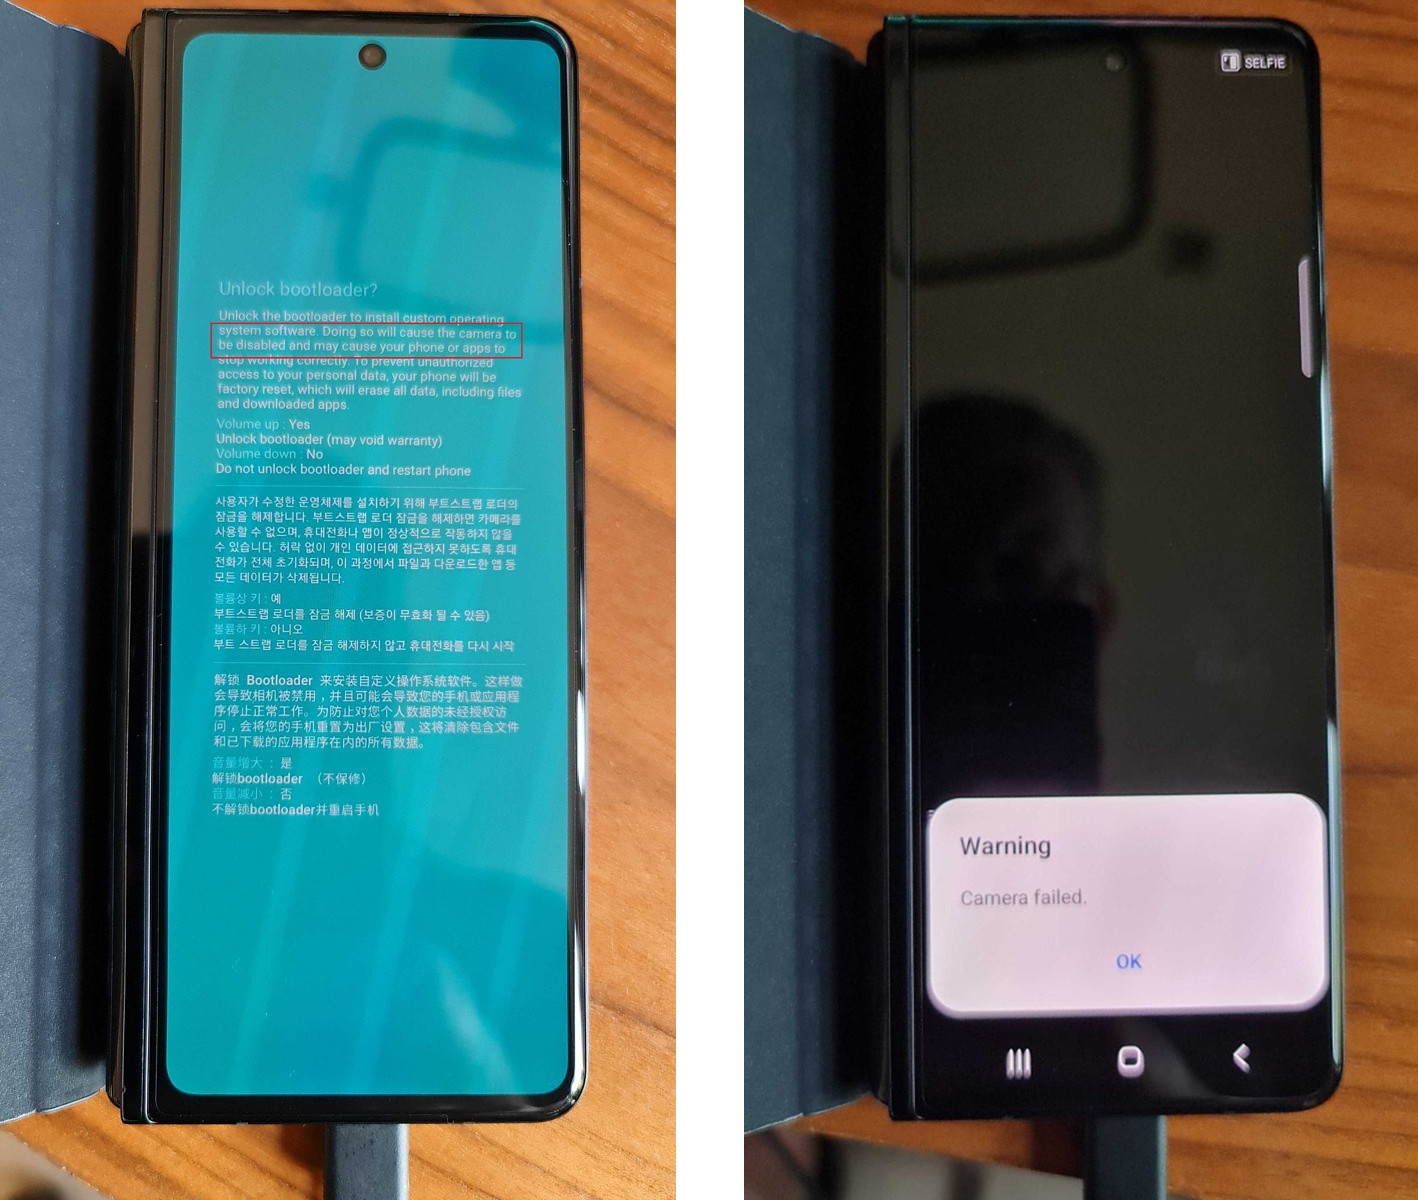 """Samsung's blue """"unlock bootloader"""" warning says that the cameras will stop working, and it's not kidding."""